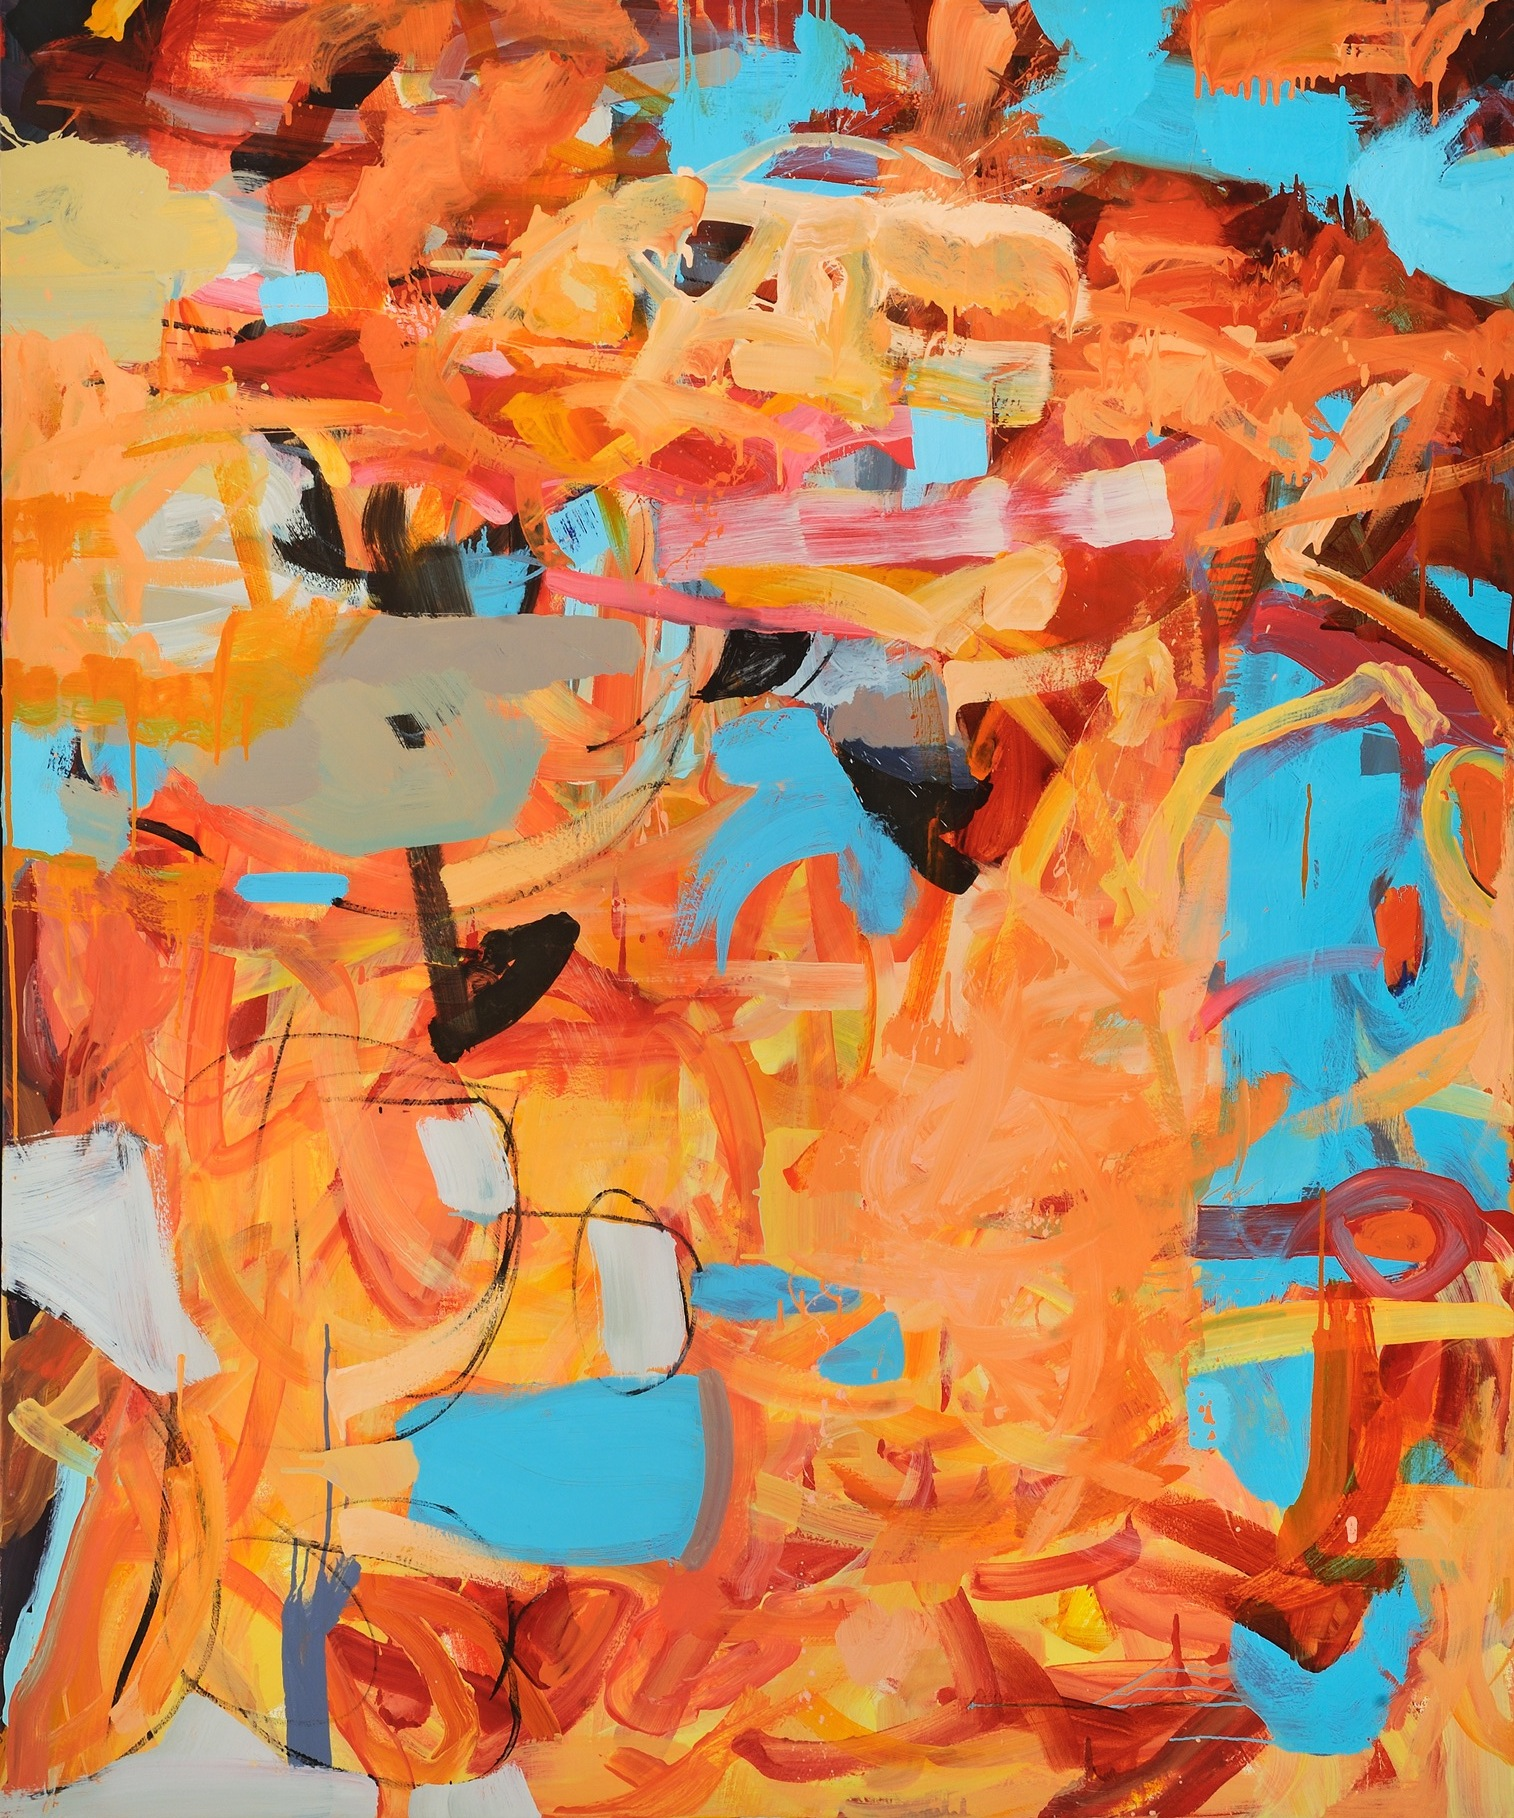 Sally Kauffman   Oil on canvas  62 x 50 inches  $4,000.00   Click here to Inquire